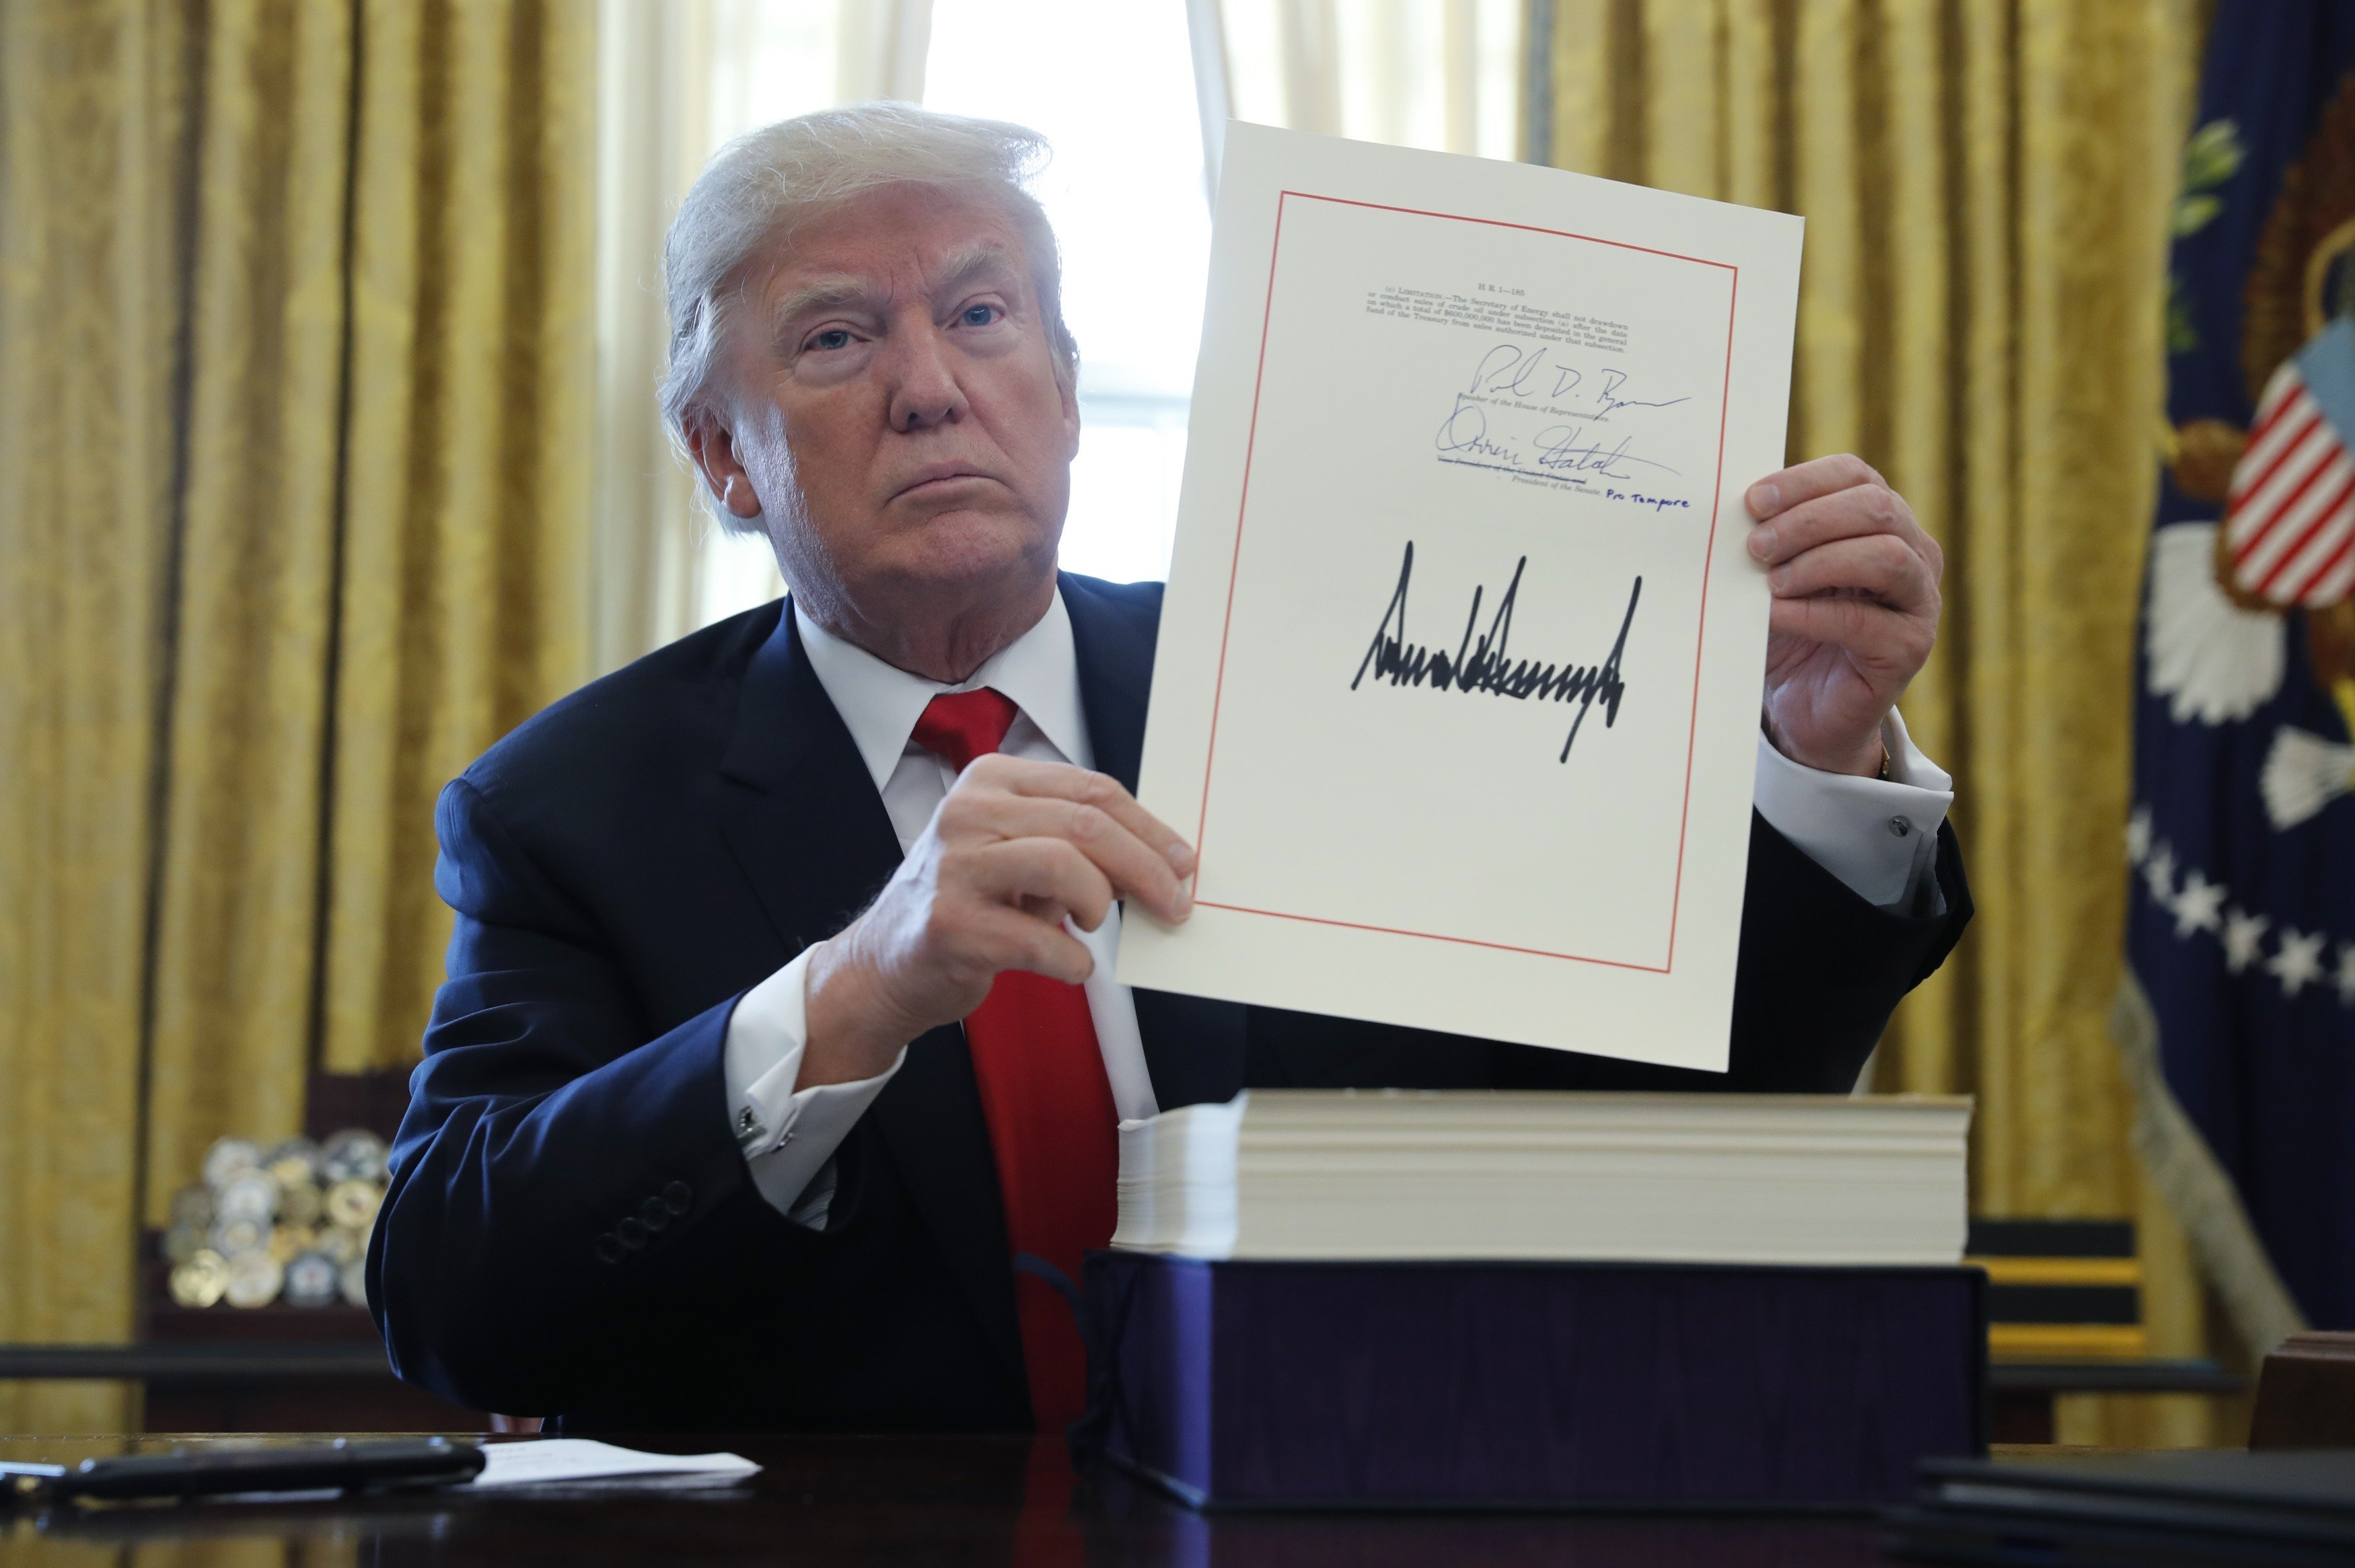 U.S. President Donald Trump displays his signature after signing the $1.5 trillion tax overhaul plan along with a short-term government spending bill in the Oval Office of the White House in Washington, U.S